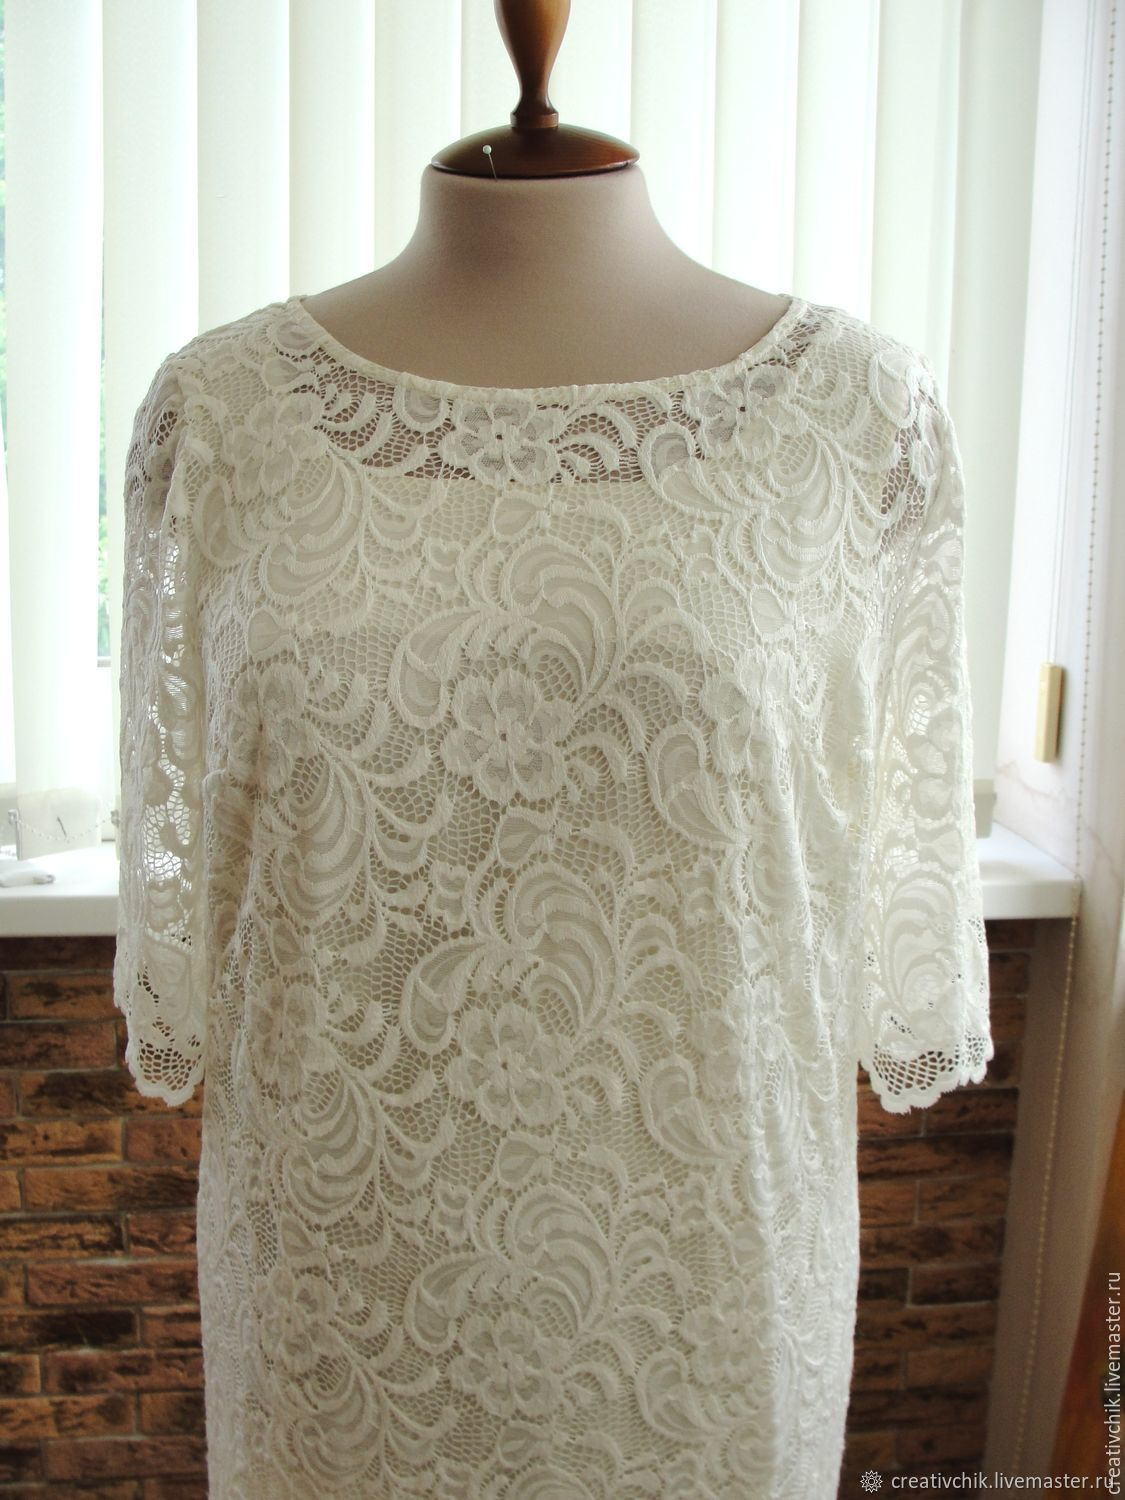 Lace dress Whipped cream bottom dress cotton, Dresses, Volgograd,  Фото №1